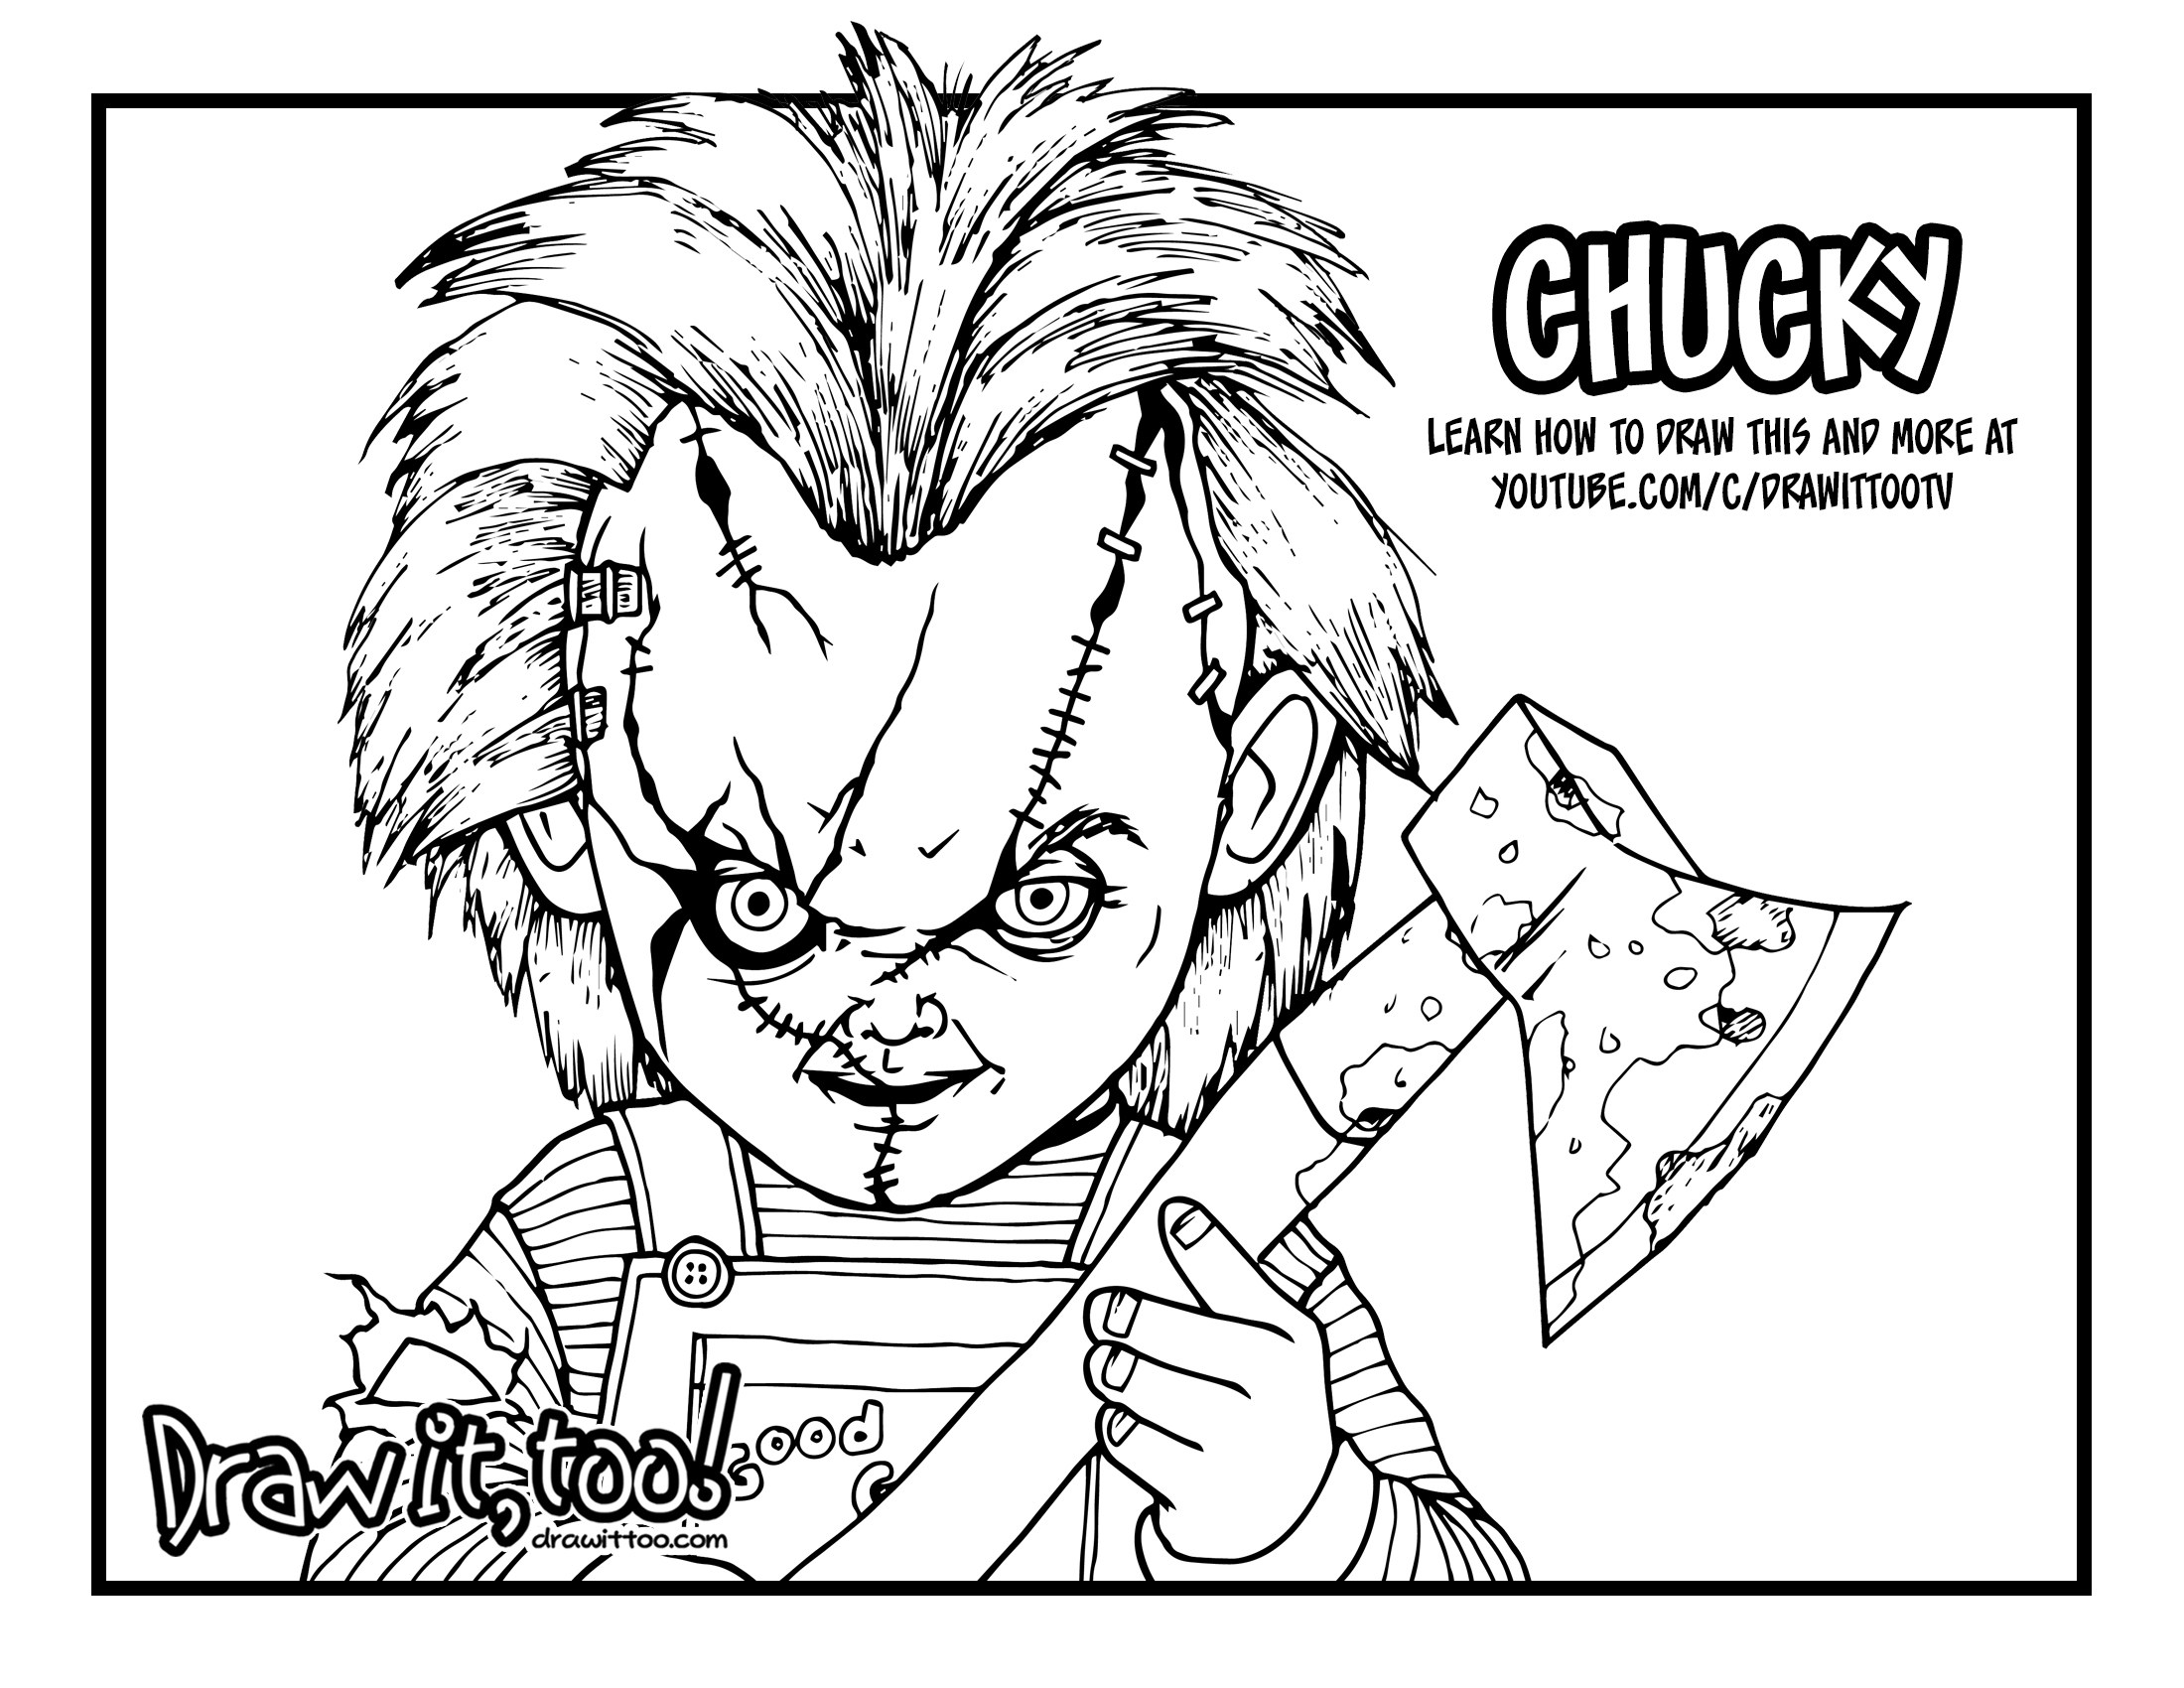 2200x1700 How To Draw Chucky (Child's Play) Drawing Tutorial